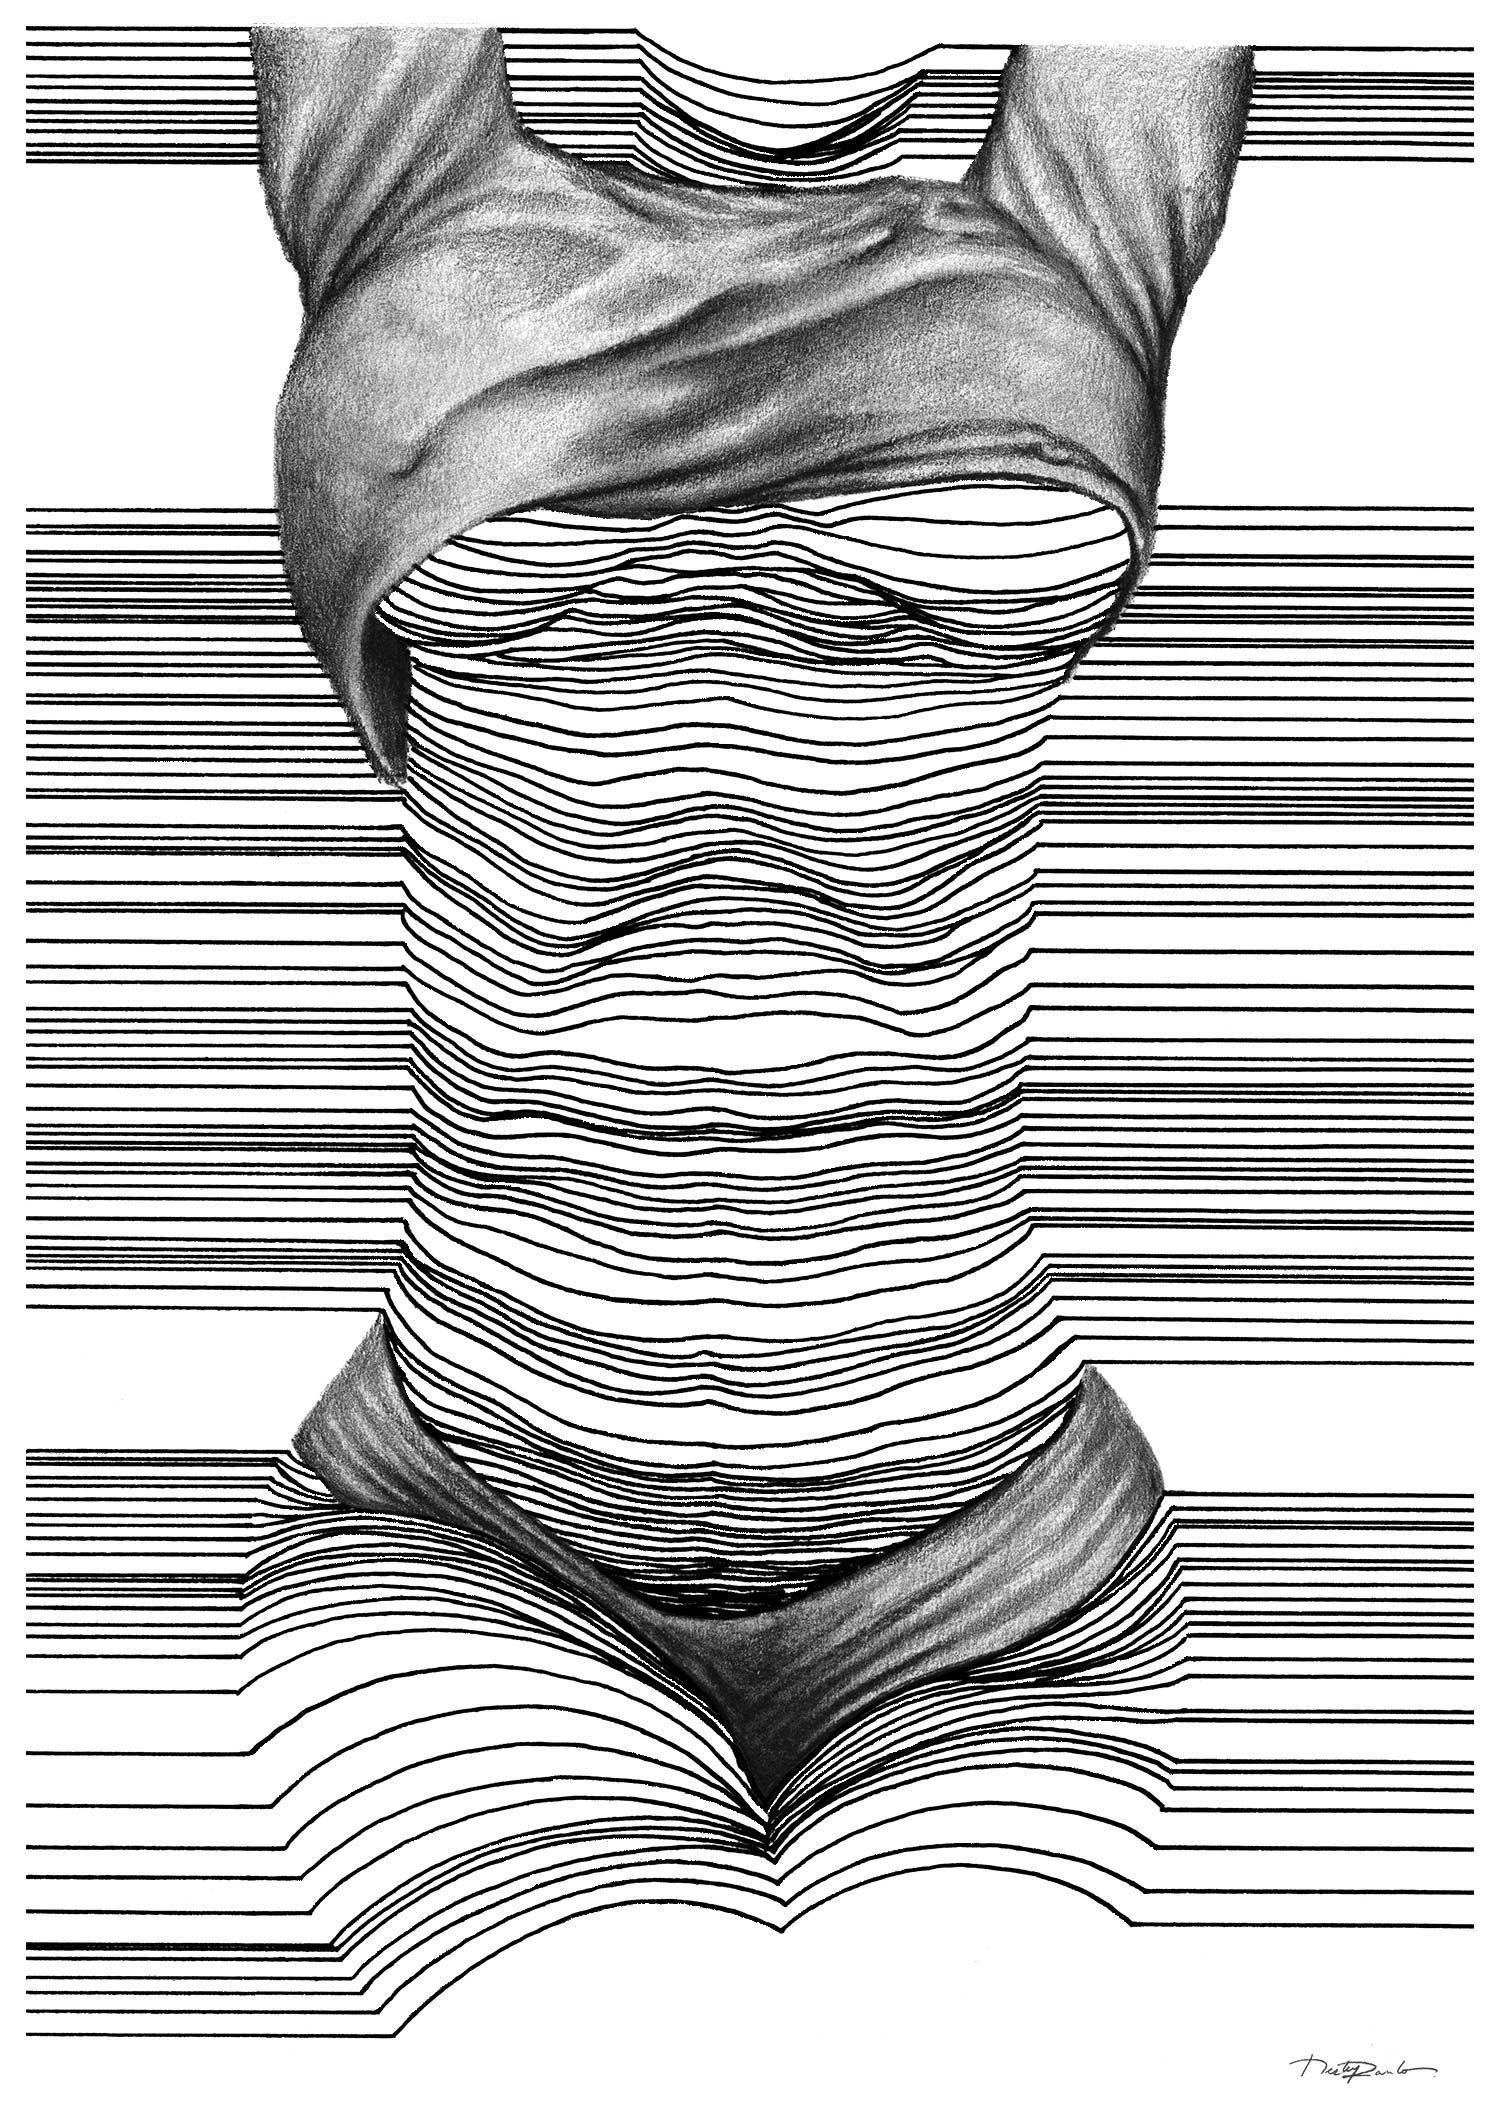 D Line Drawings Ikea : Sensual d line art by nester formentera drawings